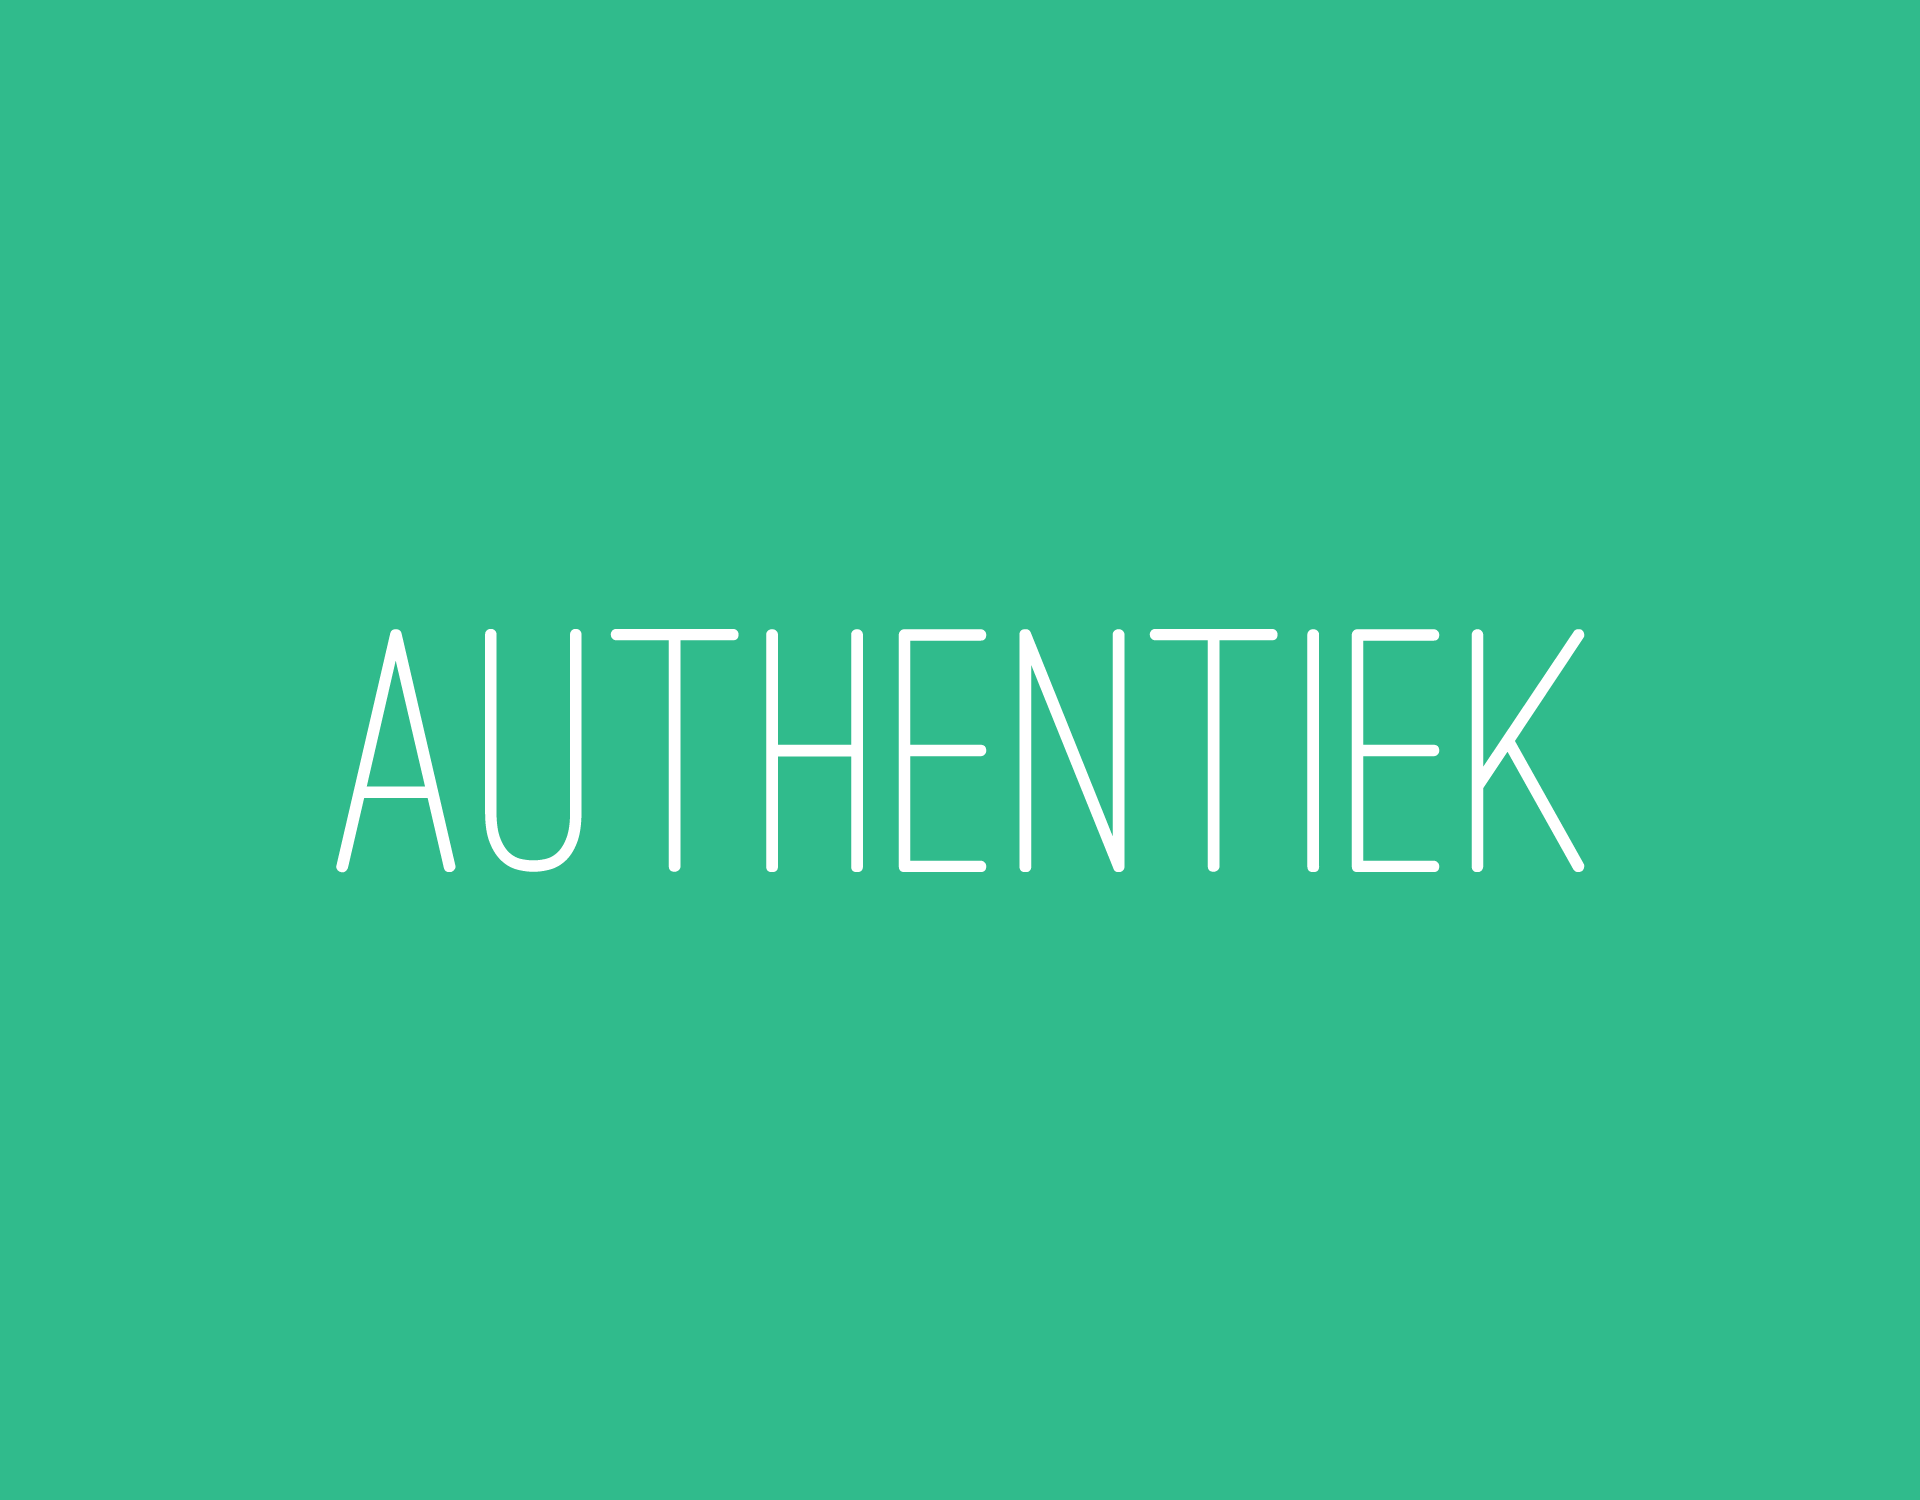 authenthiek